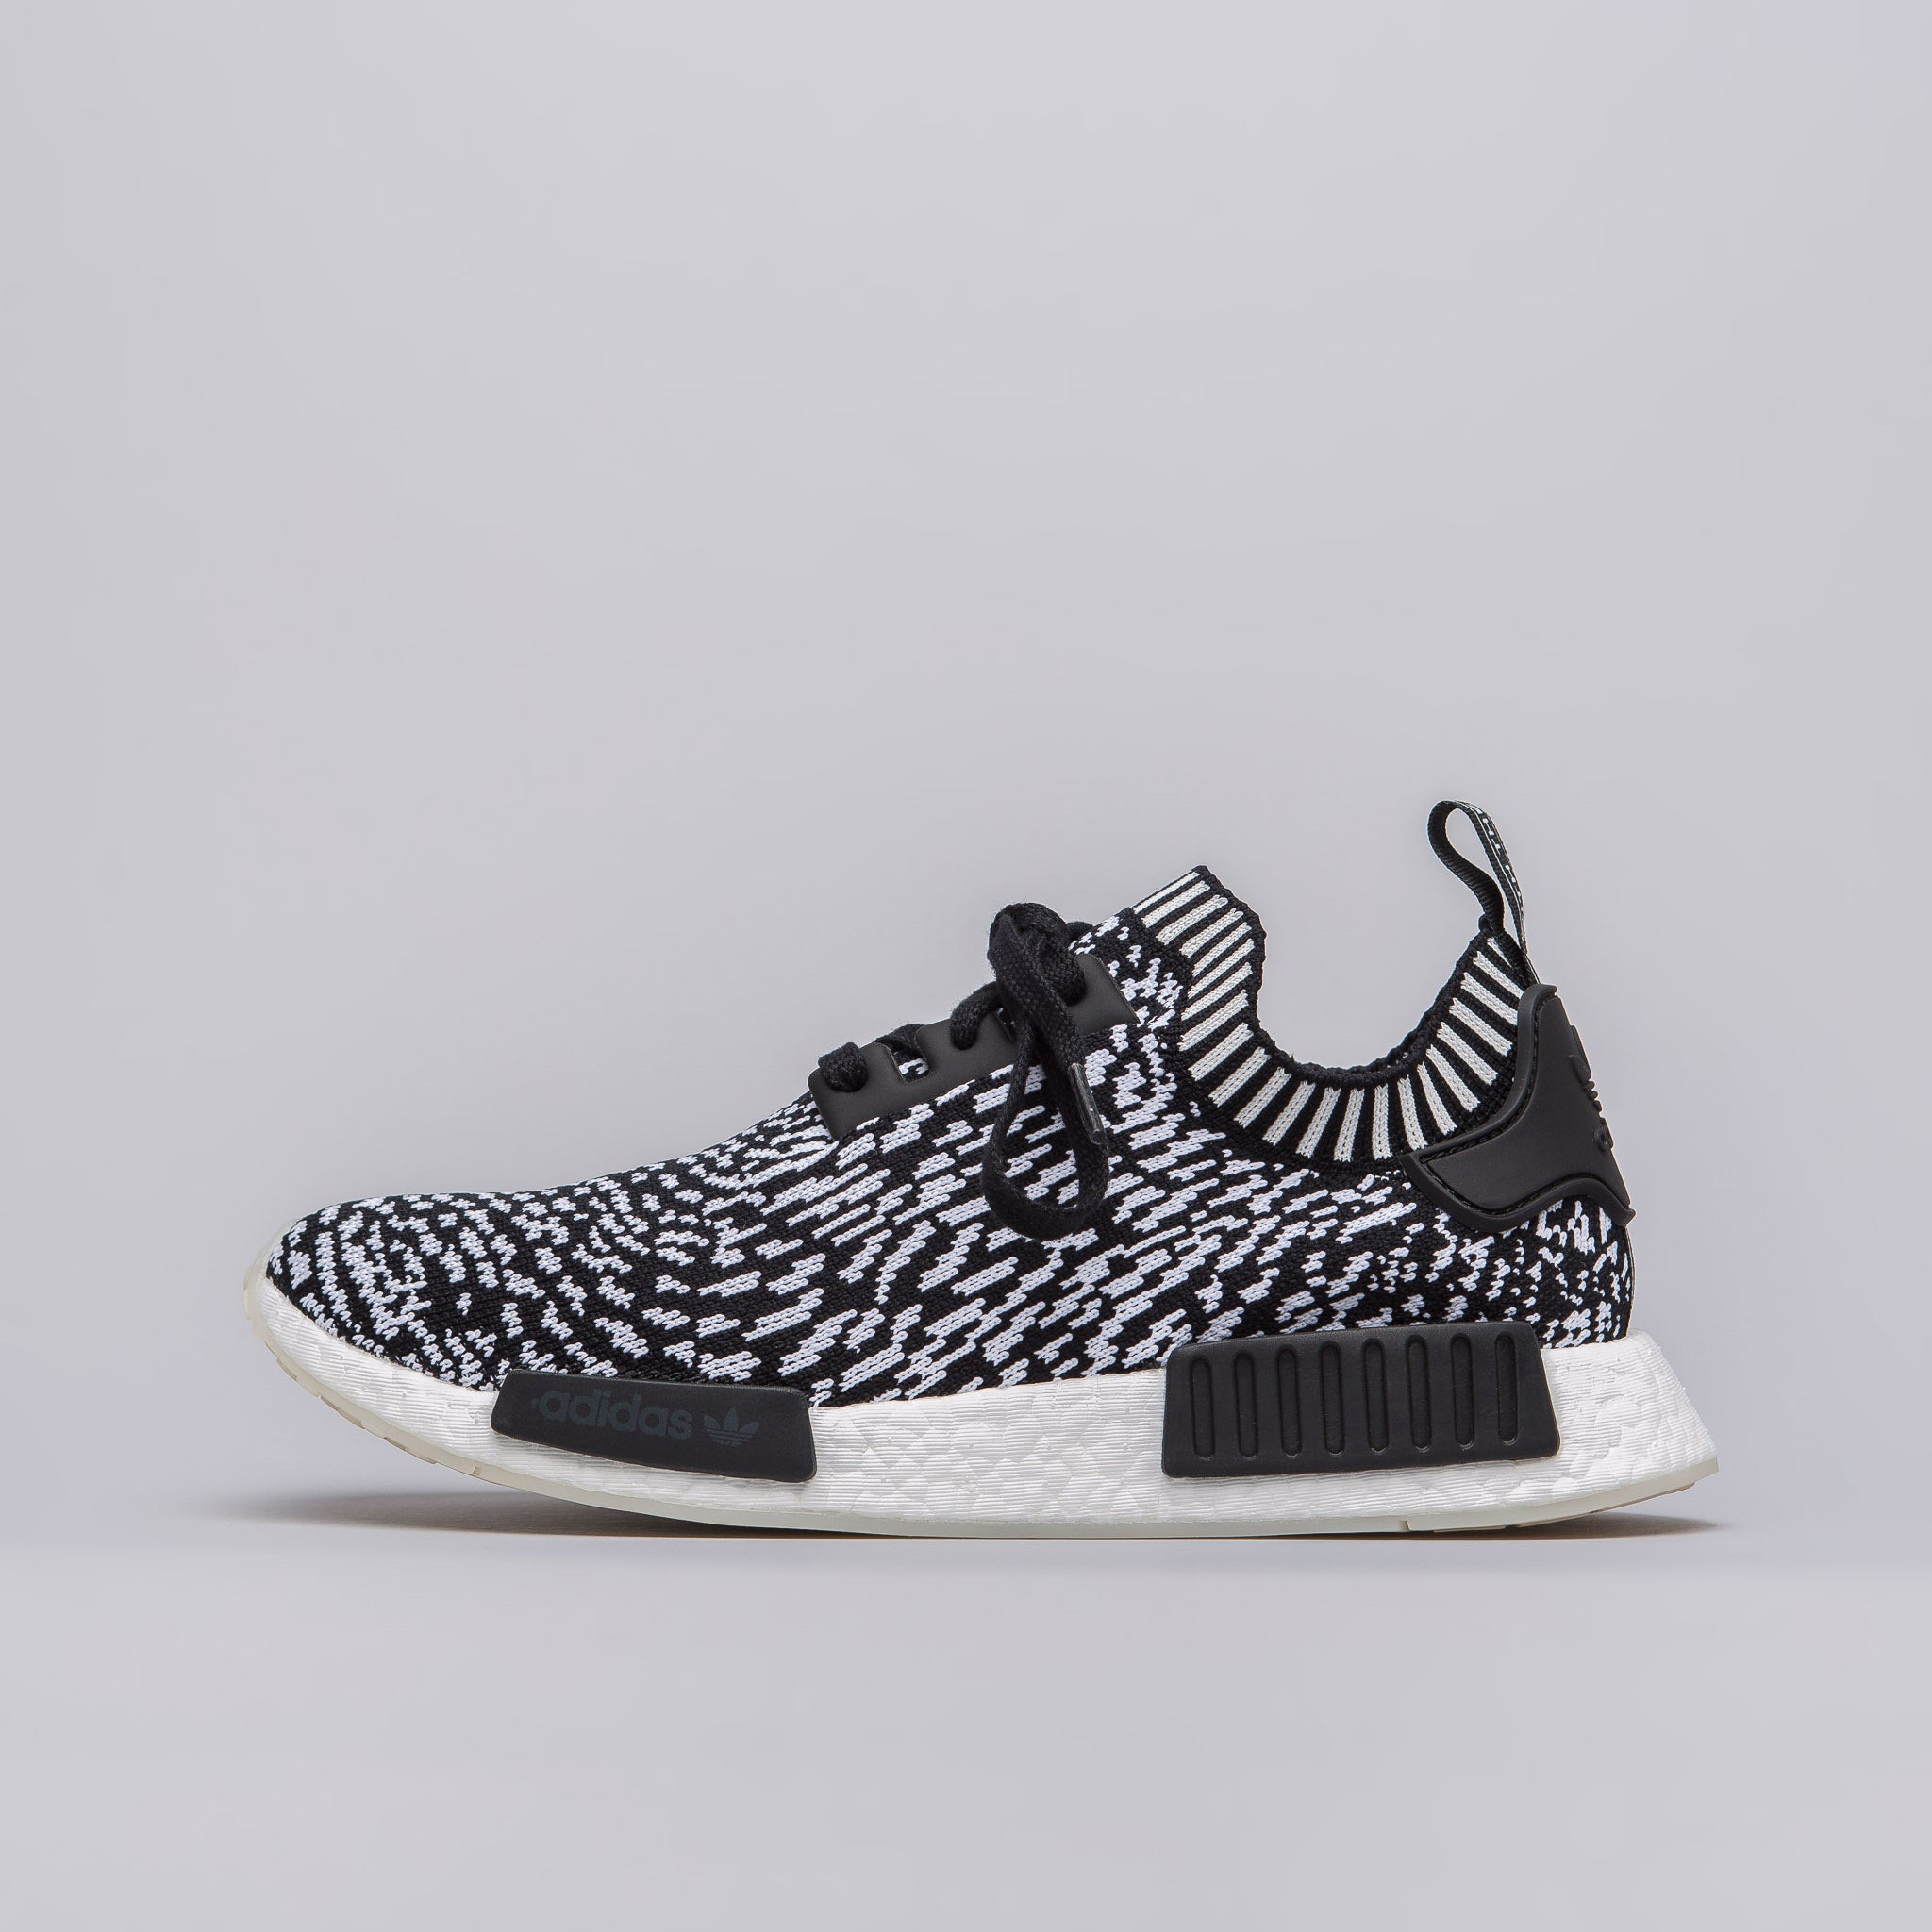 Adidas NMD R1 PK Black Trico Stripes DS Sz 8 Primeknit BB2887